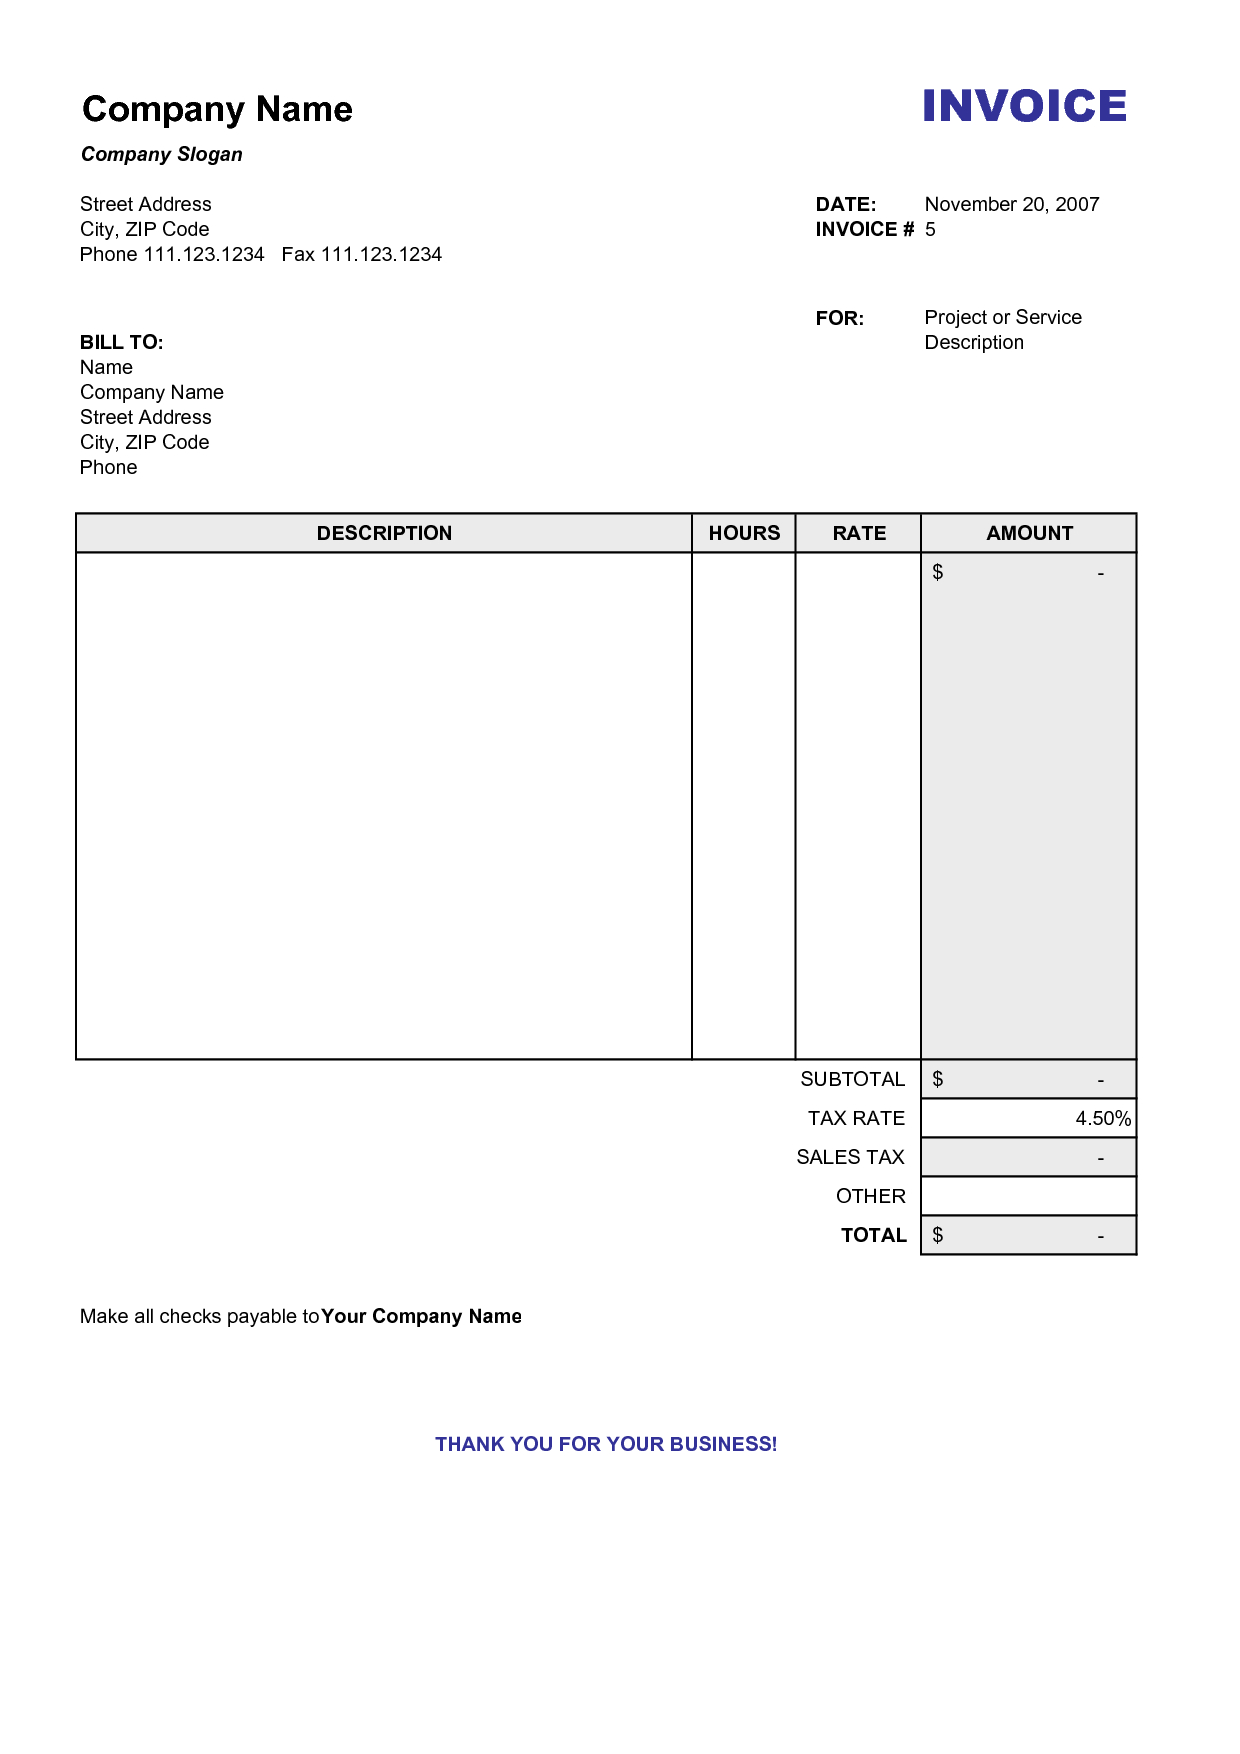 Blank Billing Invoice | Scope Of Work Template | Organization ... Together With Billing Invoice Sample